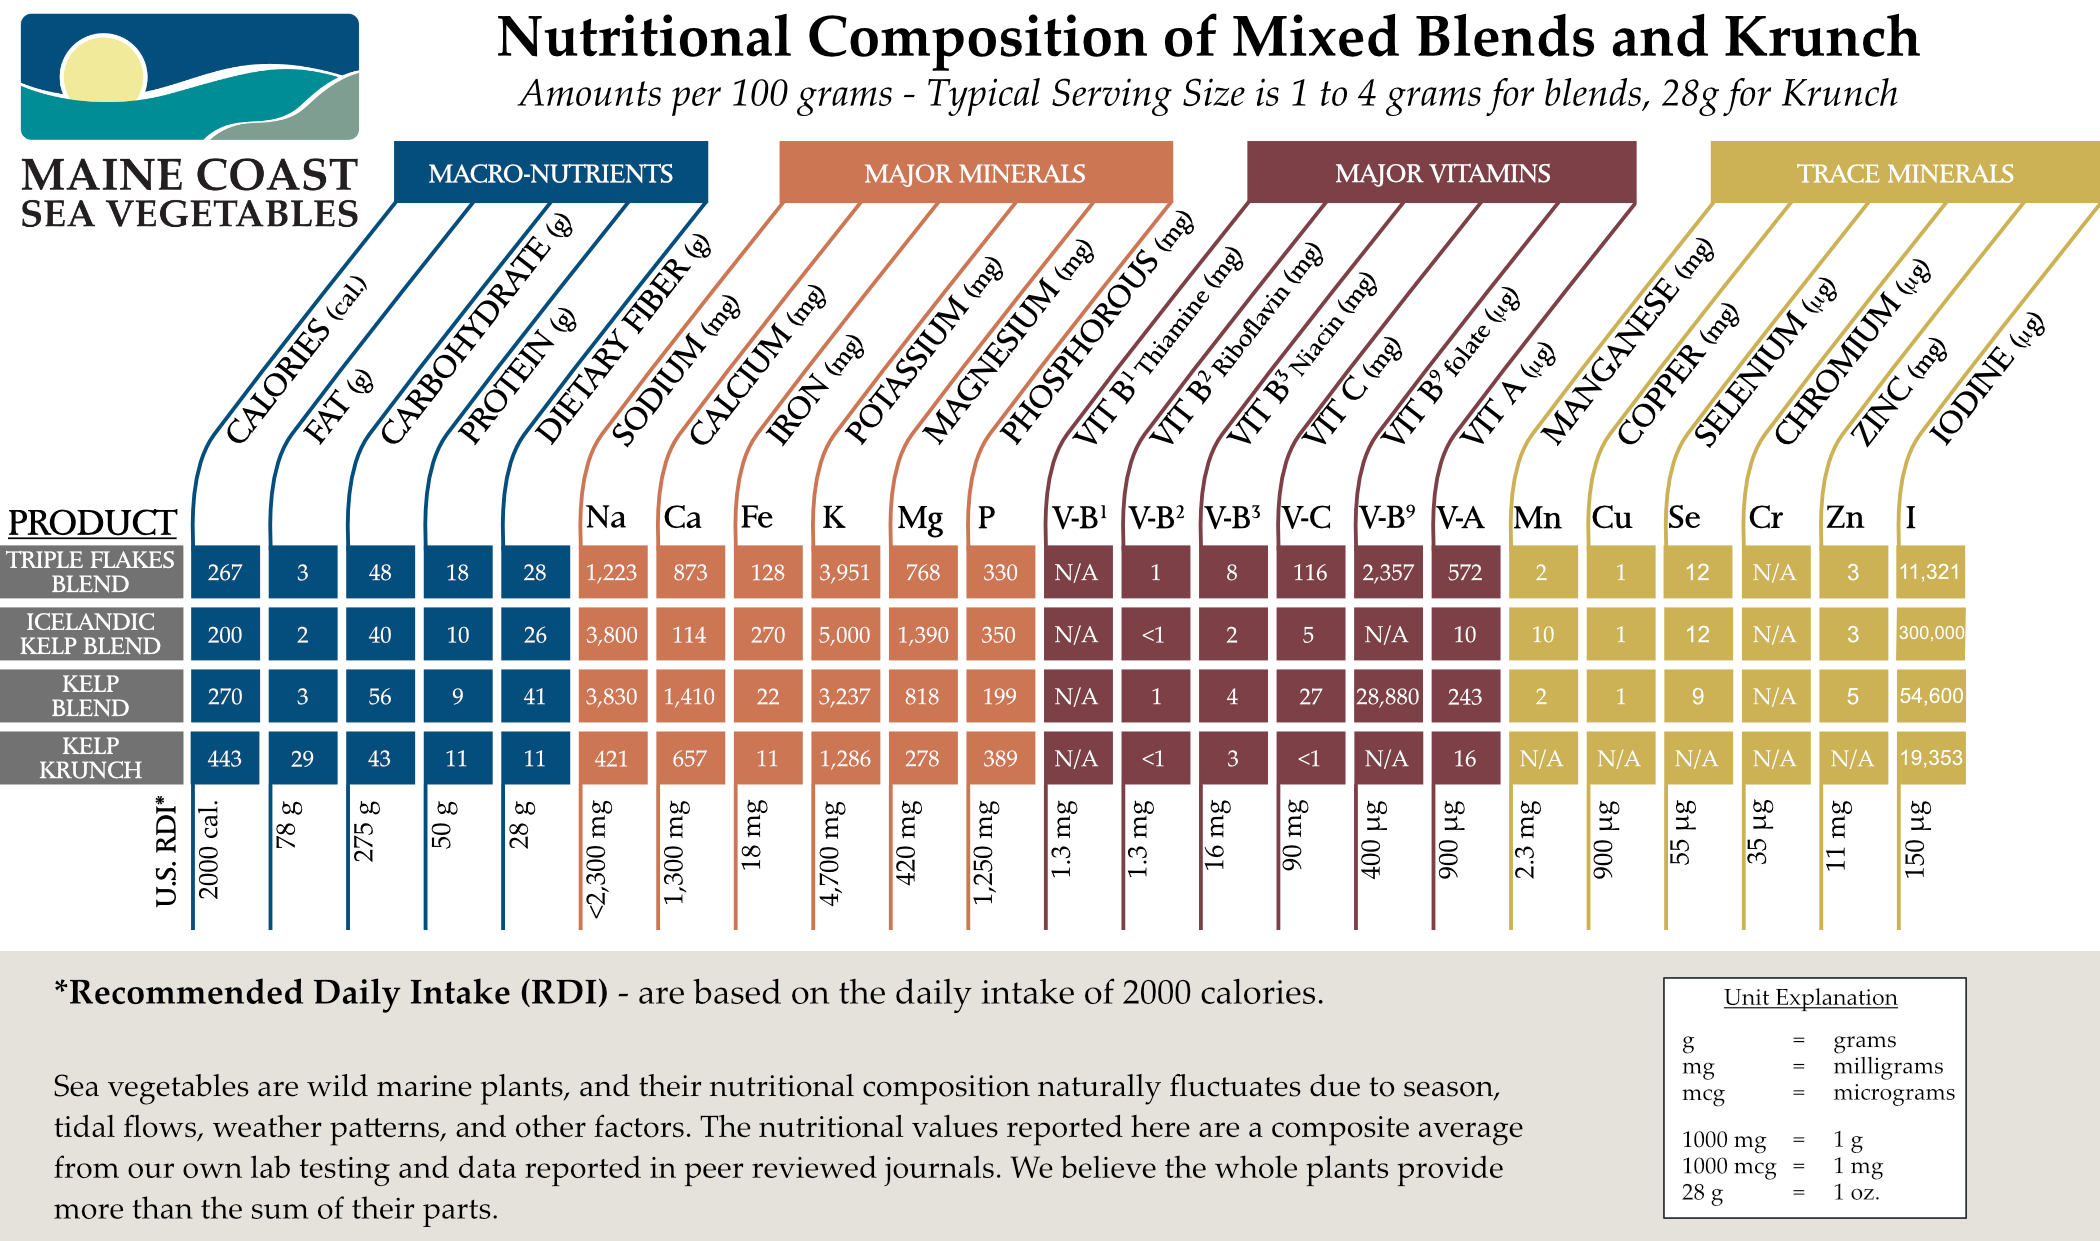 Maine Coast Sea Vegetables - Nutritional Information for kelp blends, icelandic kelp, and kelp krunch